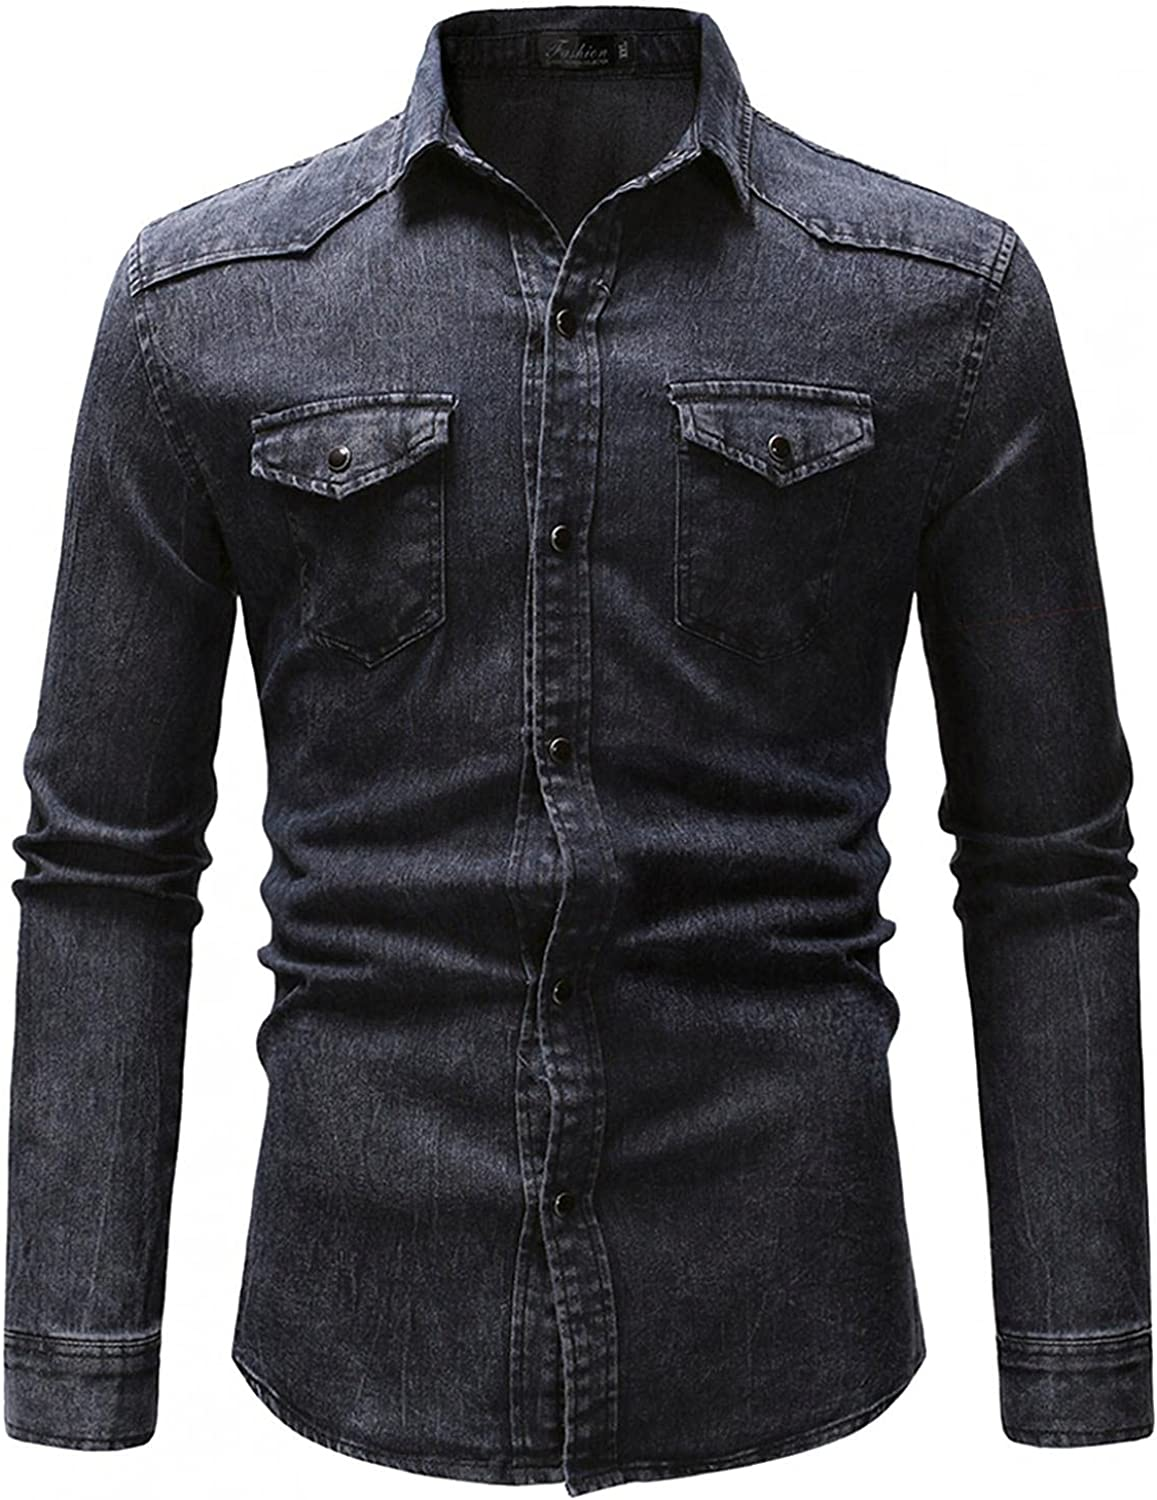 Men's Long Sleeve Denim Shirt Vintage Button Down Stand Collar Tops Stretch Casual Work Shirt with Chest Pockets